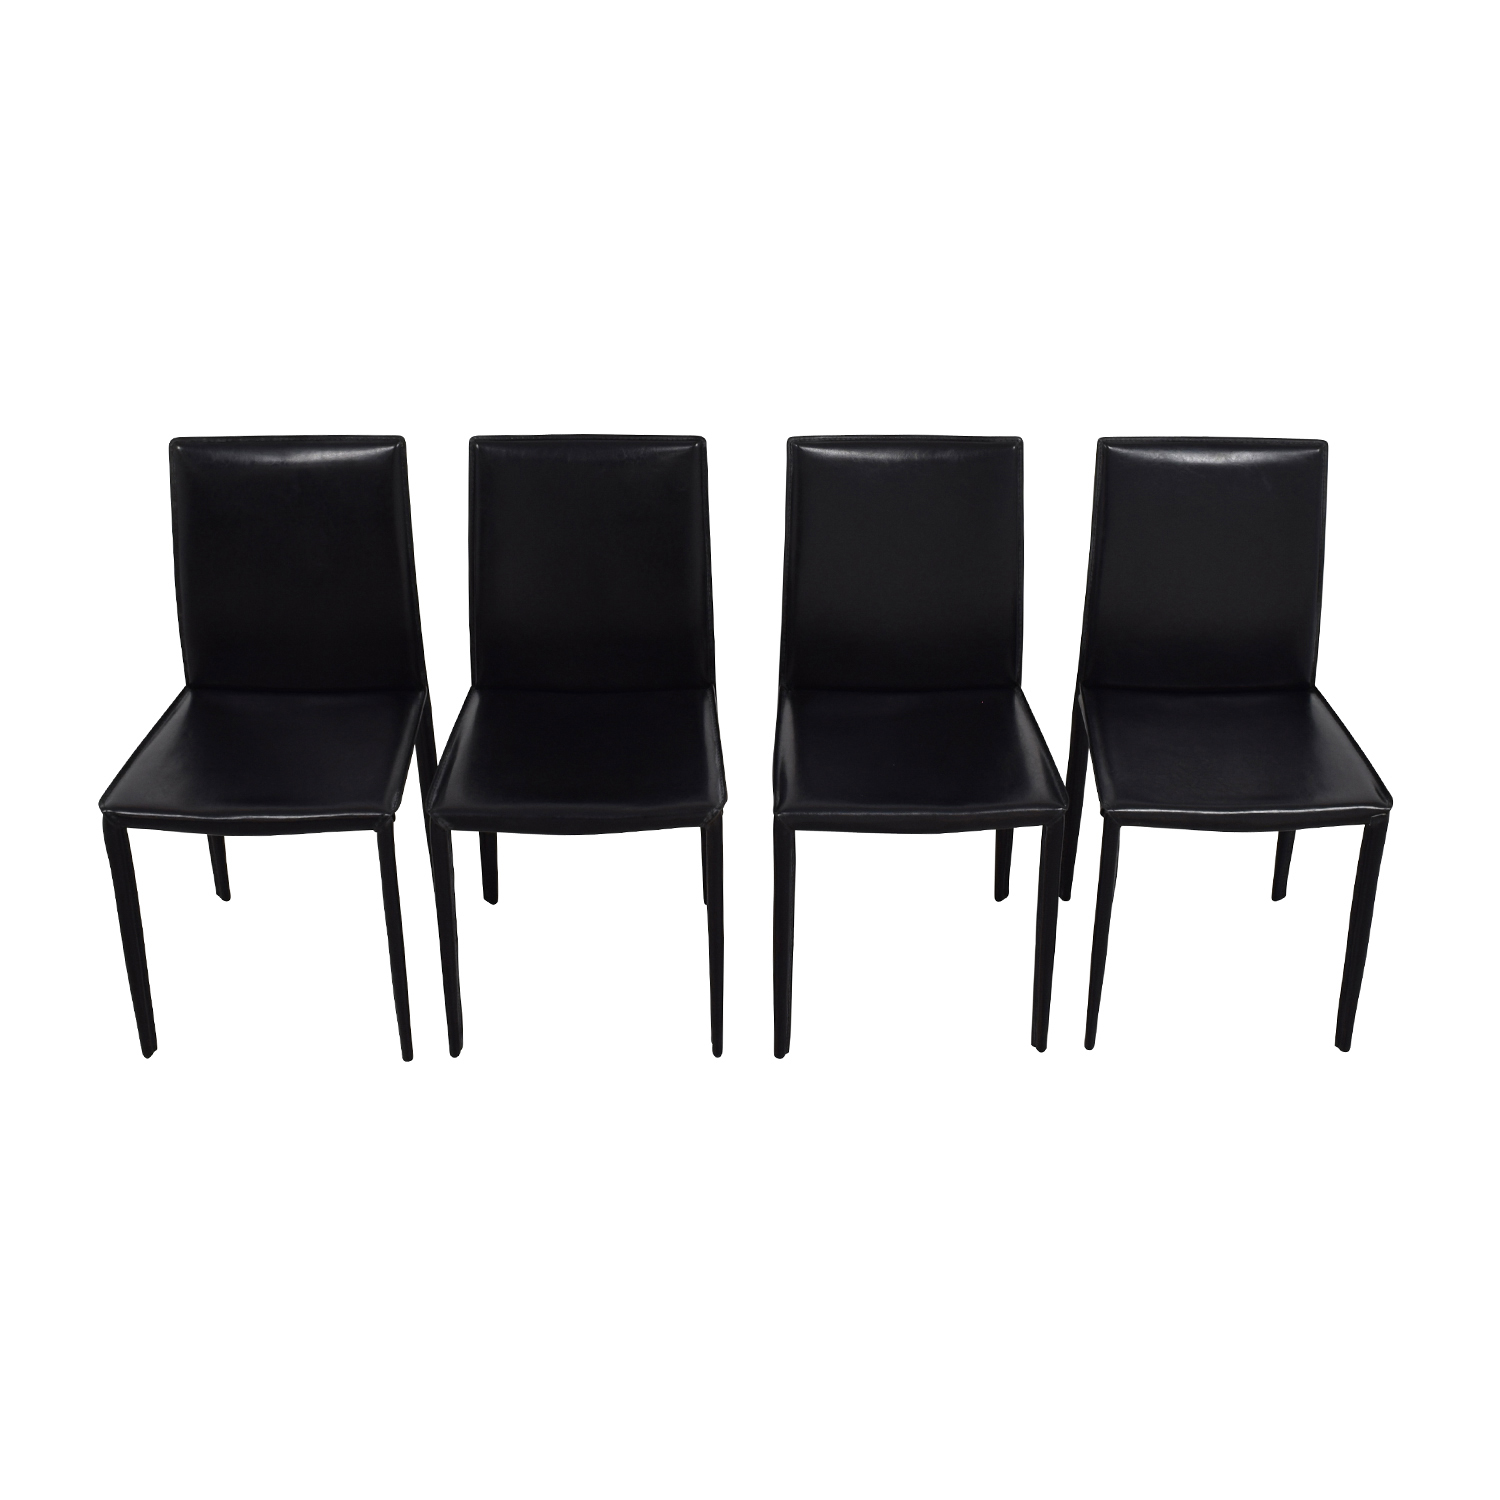 36 off inmod inmod mia black leather chair chairs for In mod furniture